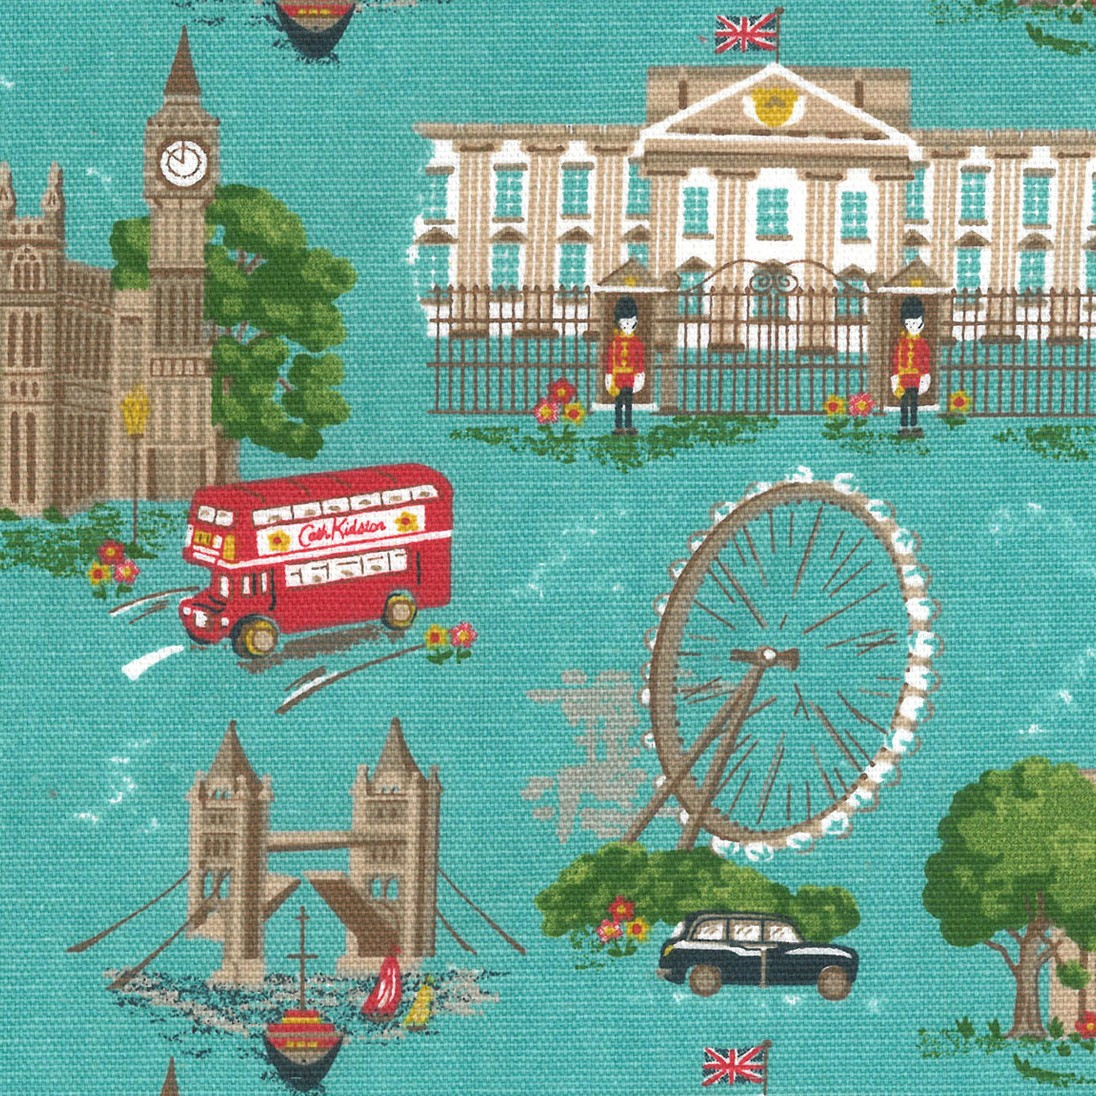 London Scene Cotton Duck - Blue - Blue Cath Kidston cotton fabric with London style print